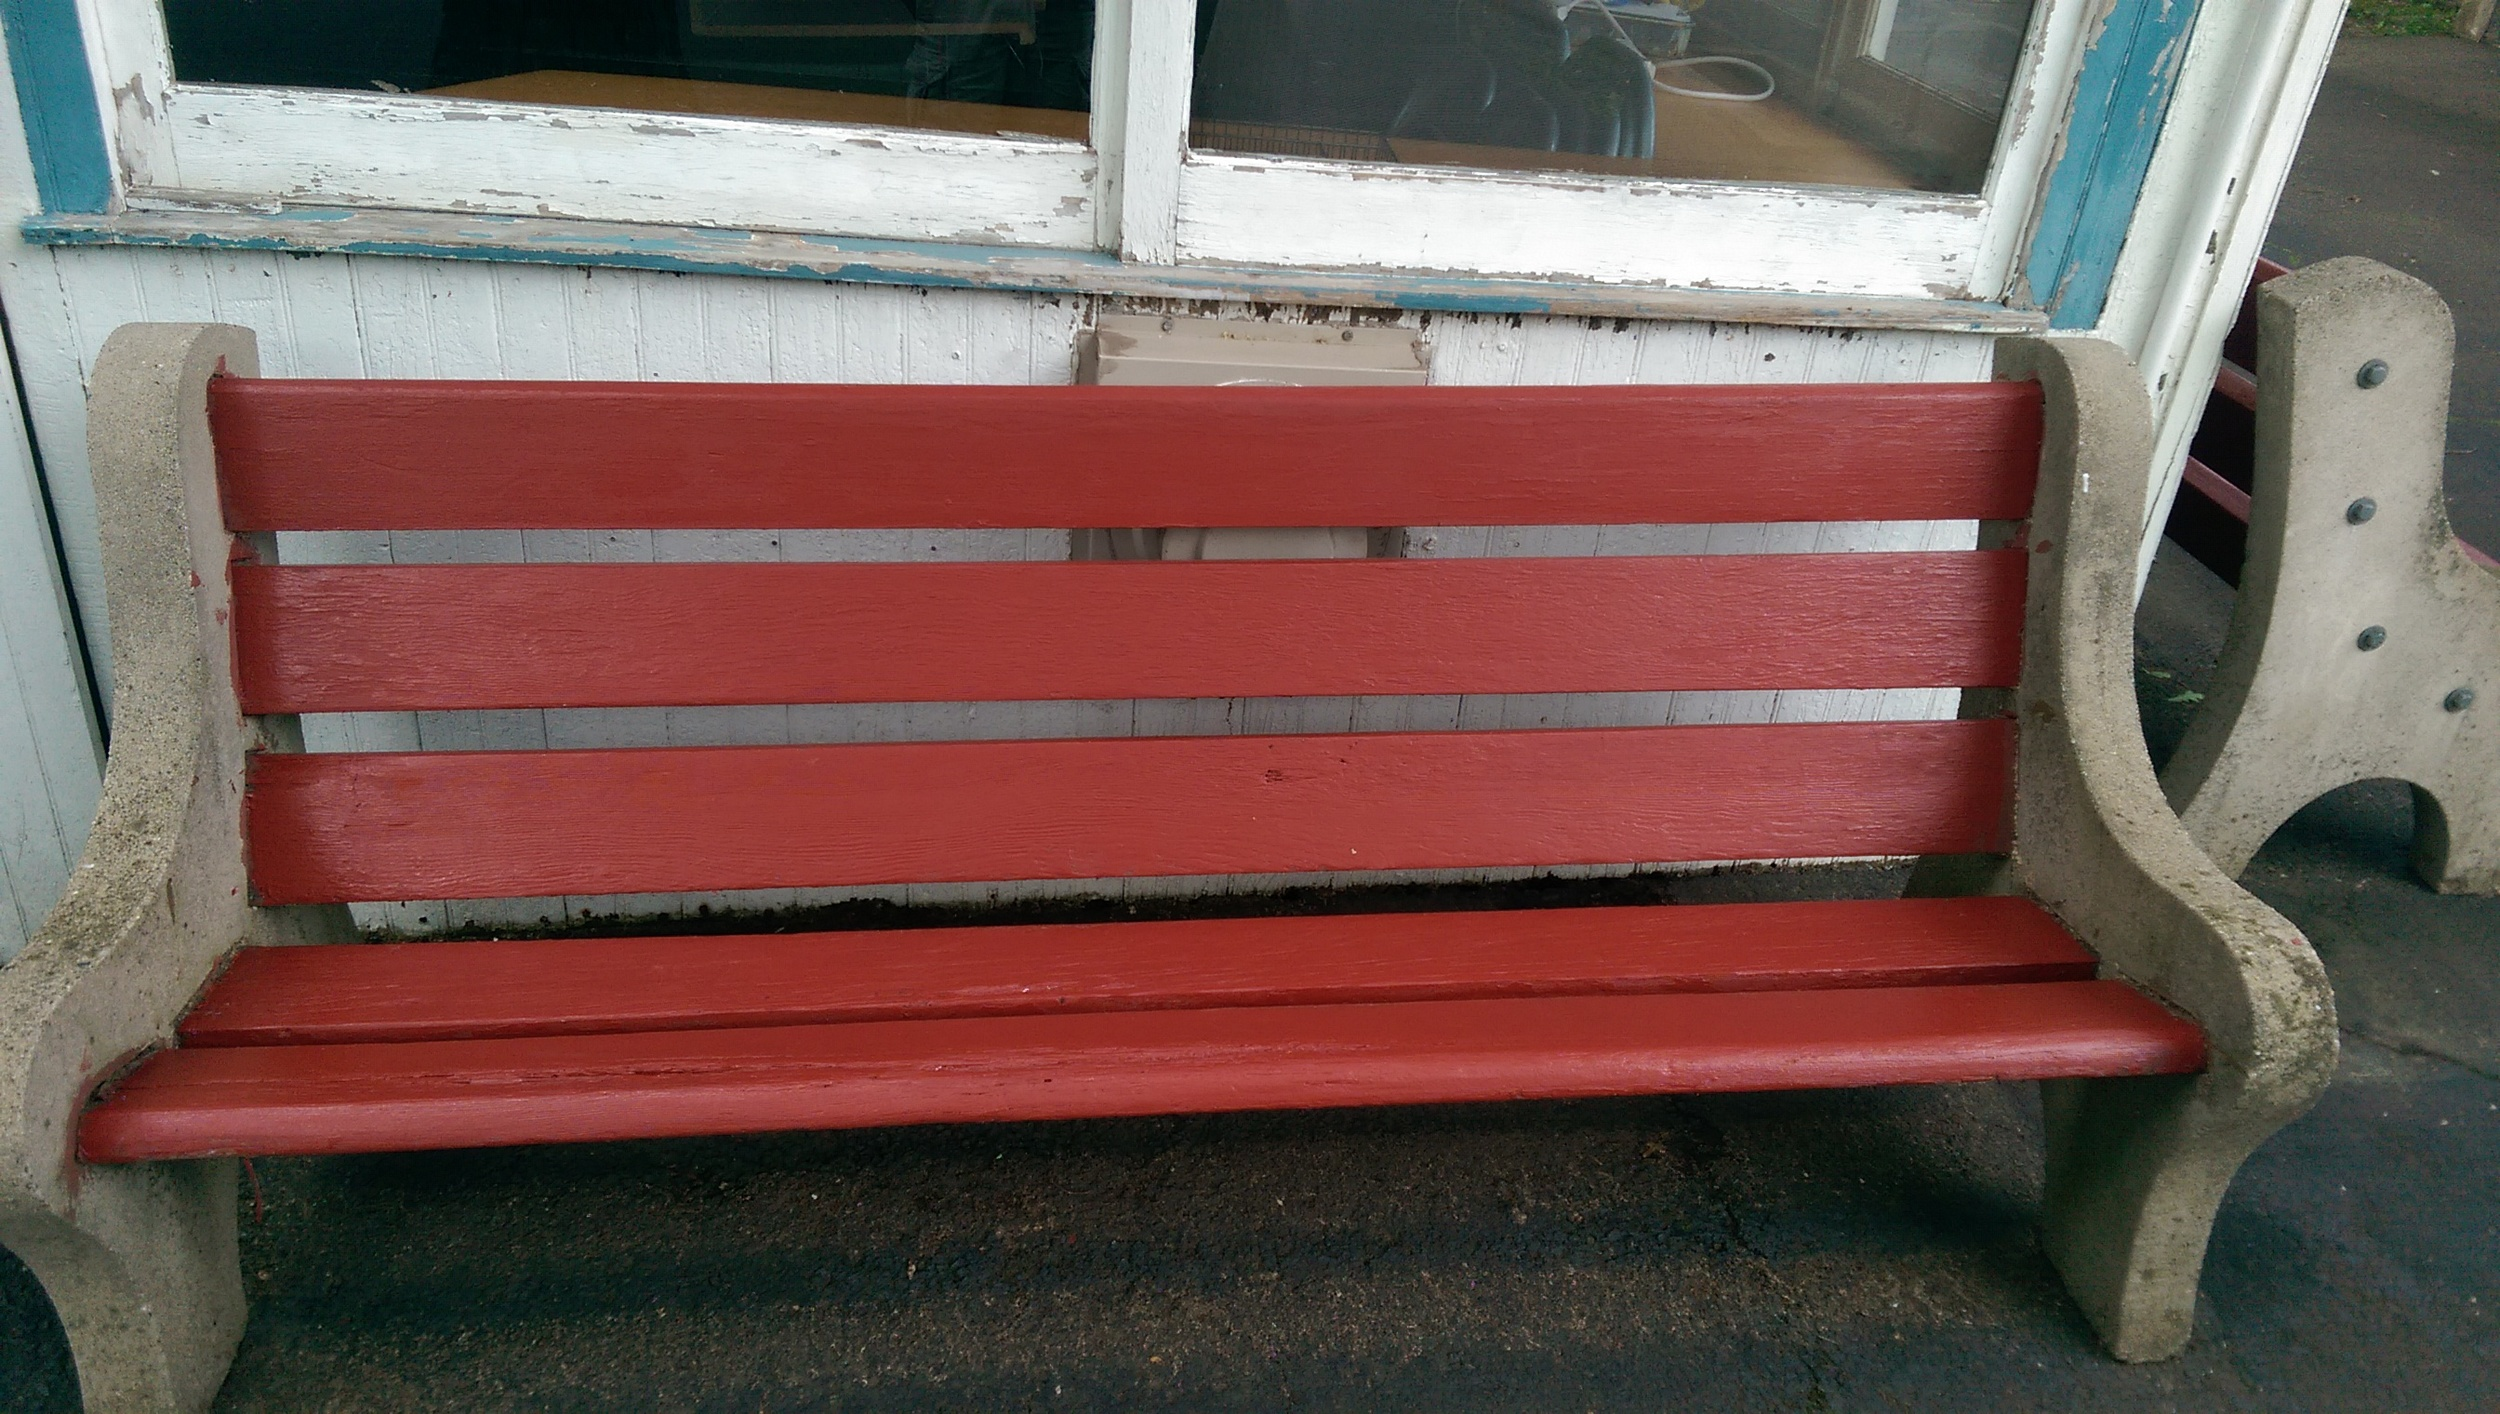 Newly repainted benches in the Snack Stand area!